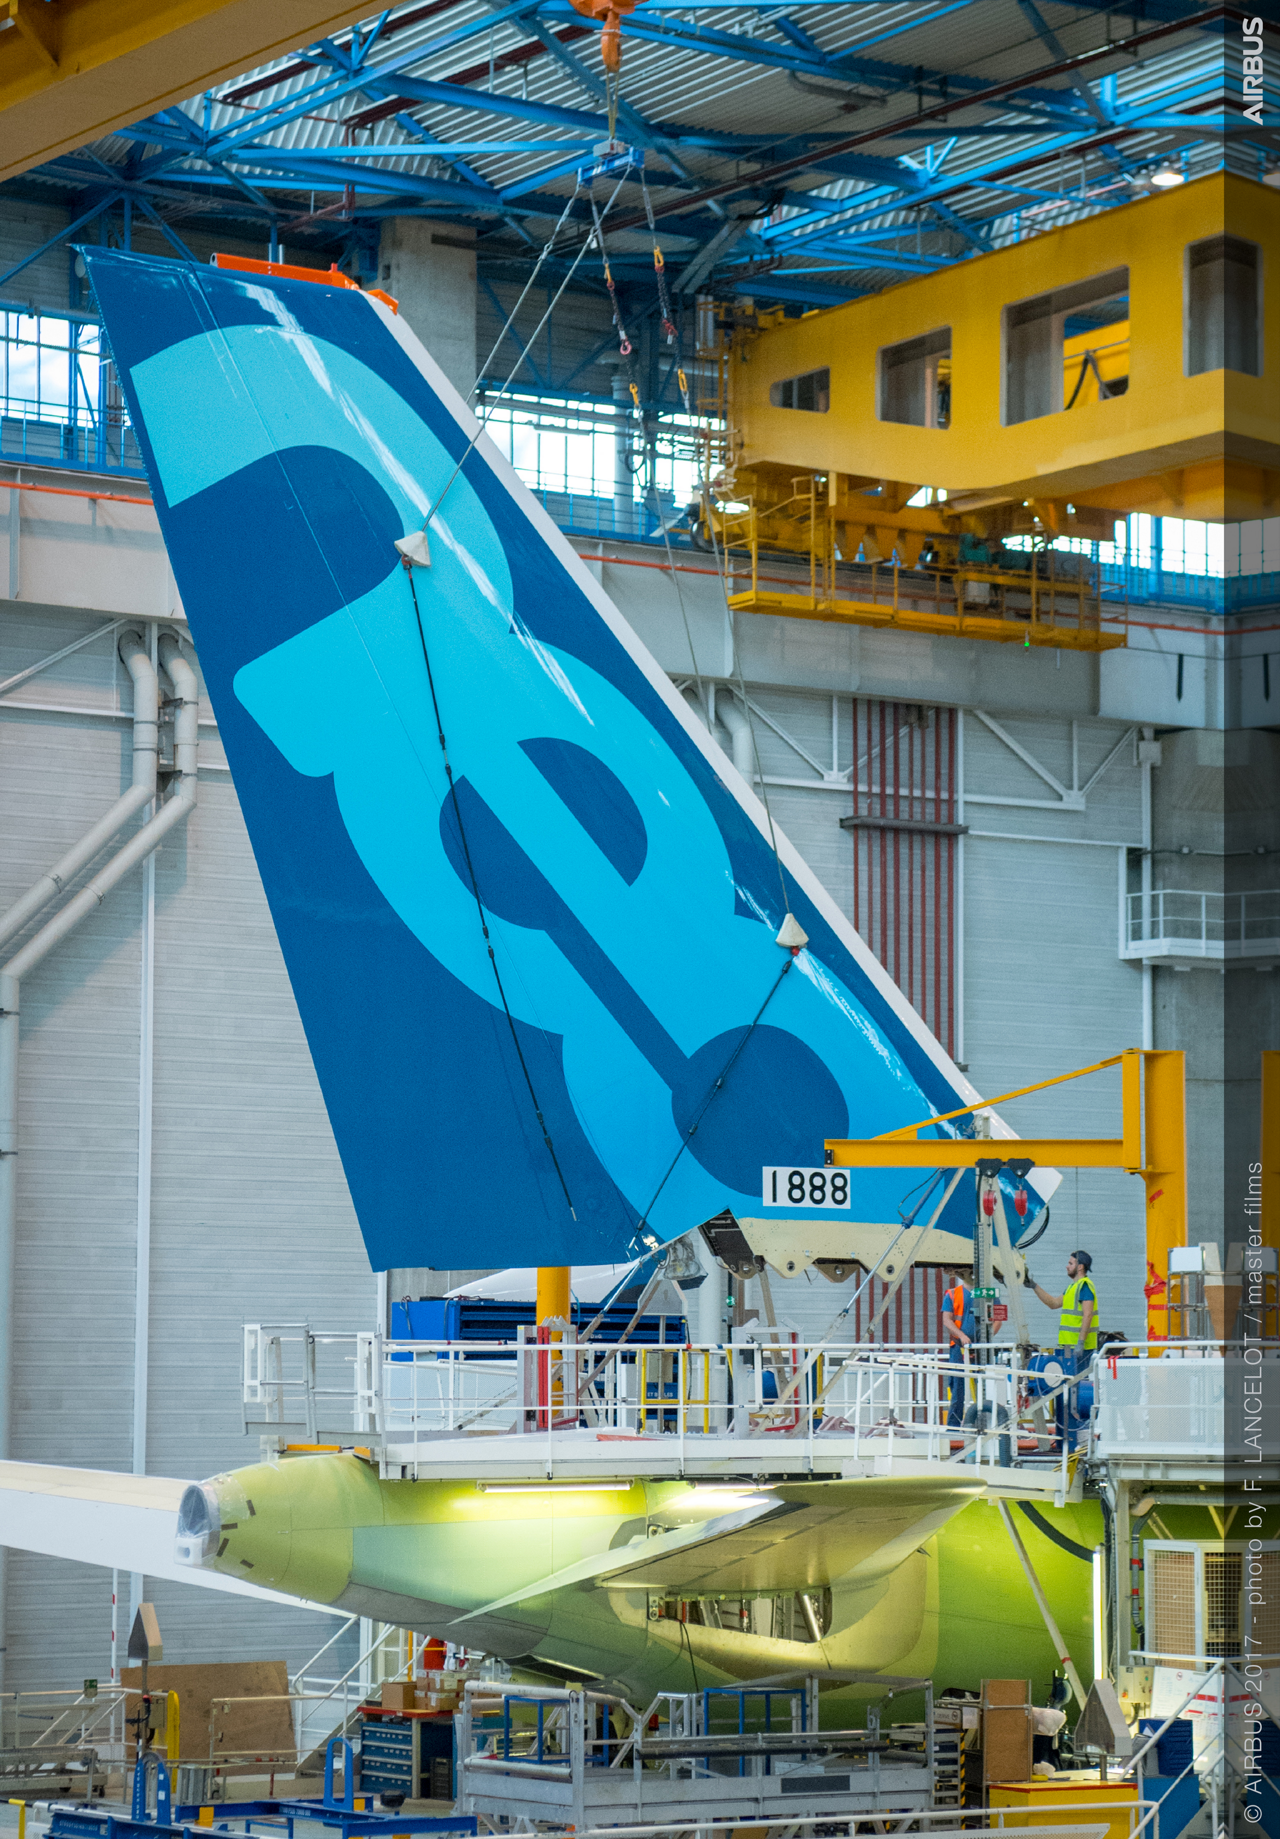 The A330-800neo – one of two A330neo versions, along with the A330-900neo – is a more efficient aircraft that will generate savings through its reduced fuel burn.